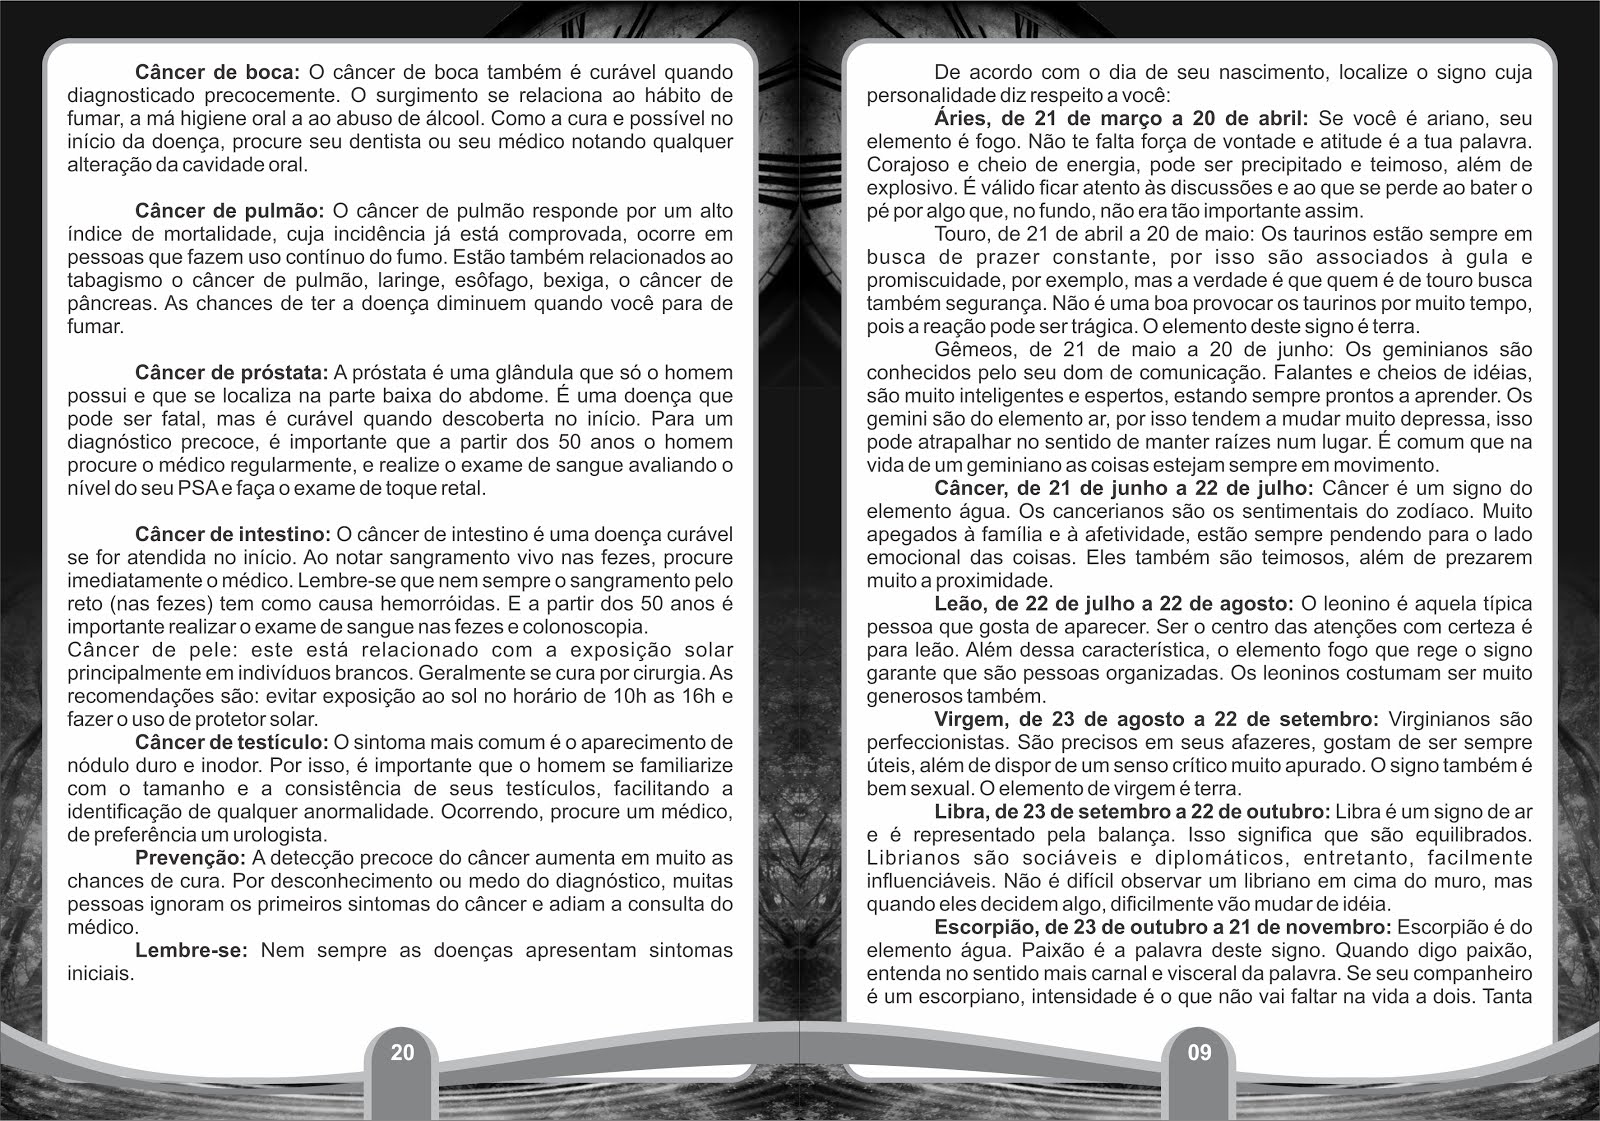 09  PAGINAS  DO ALMANAQUE DO SERTÃO